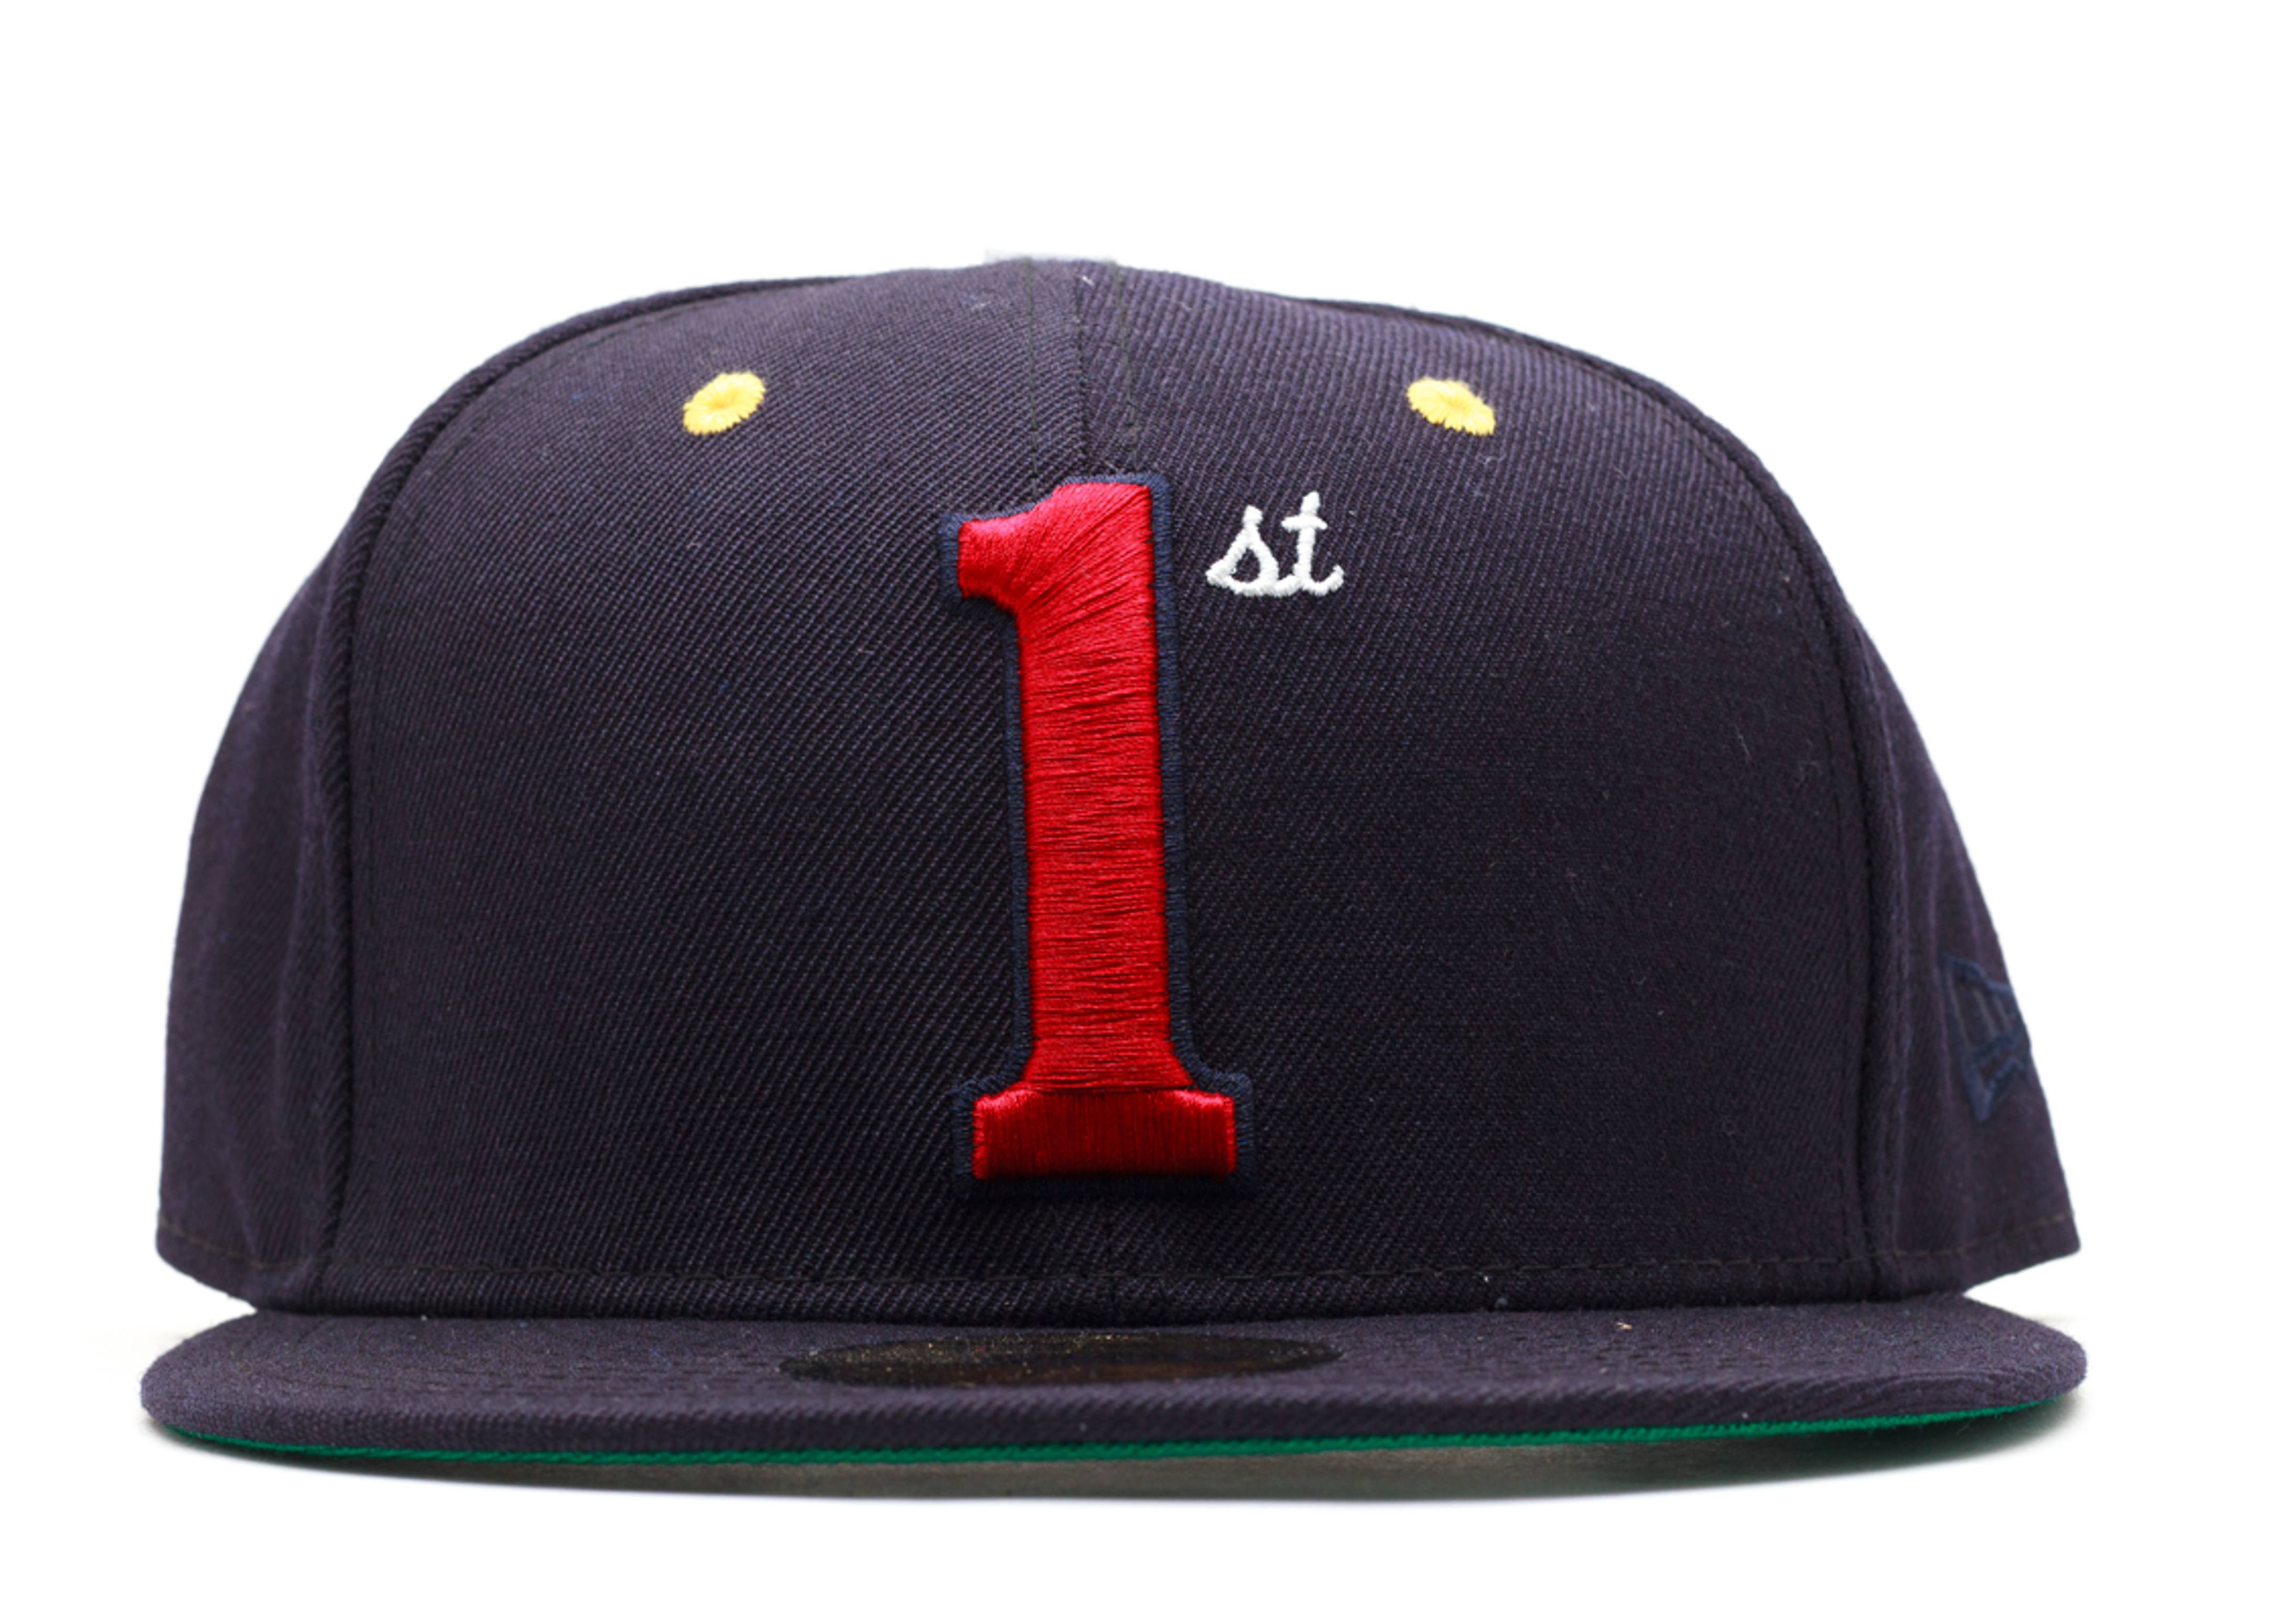 number 1 new era fitted